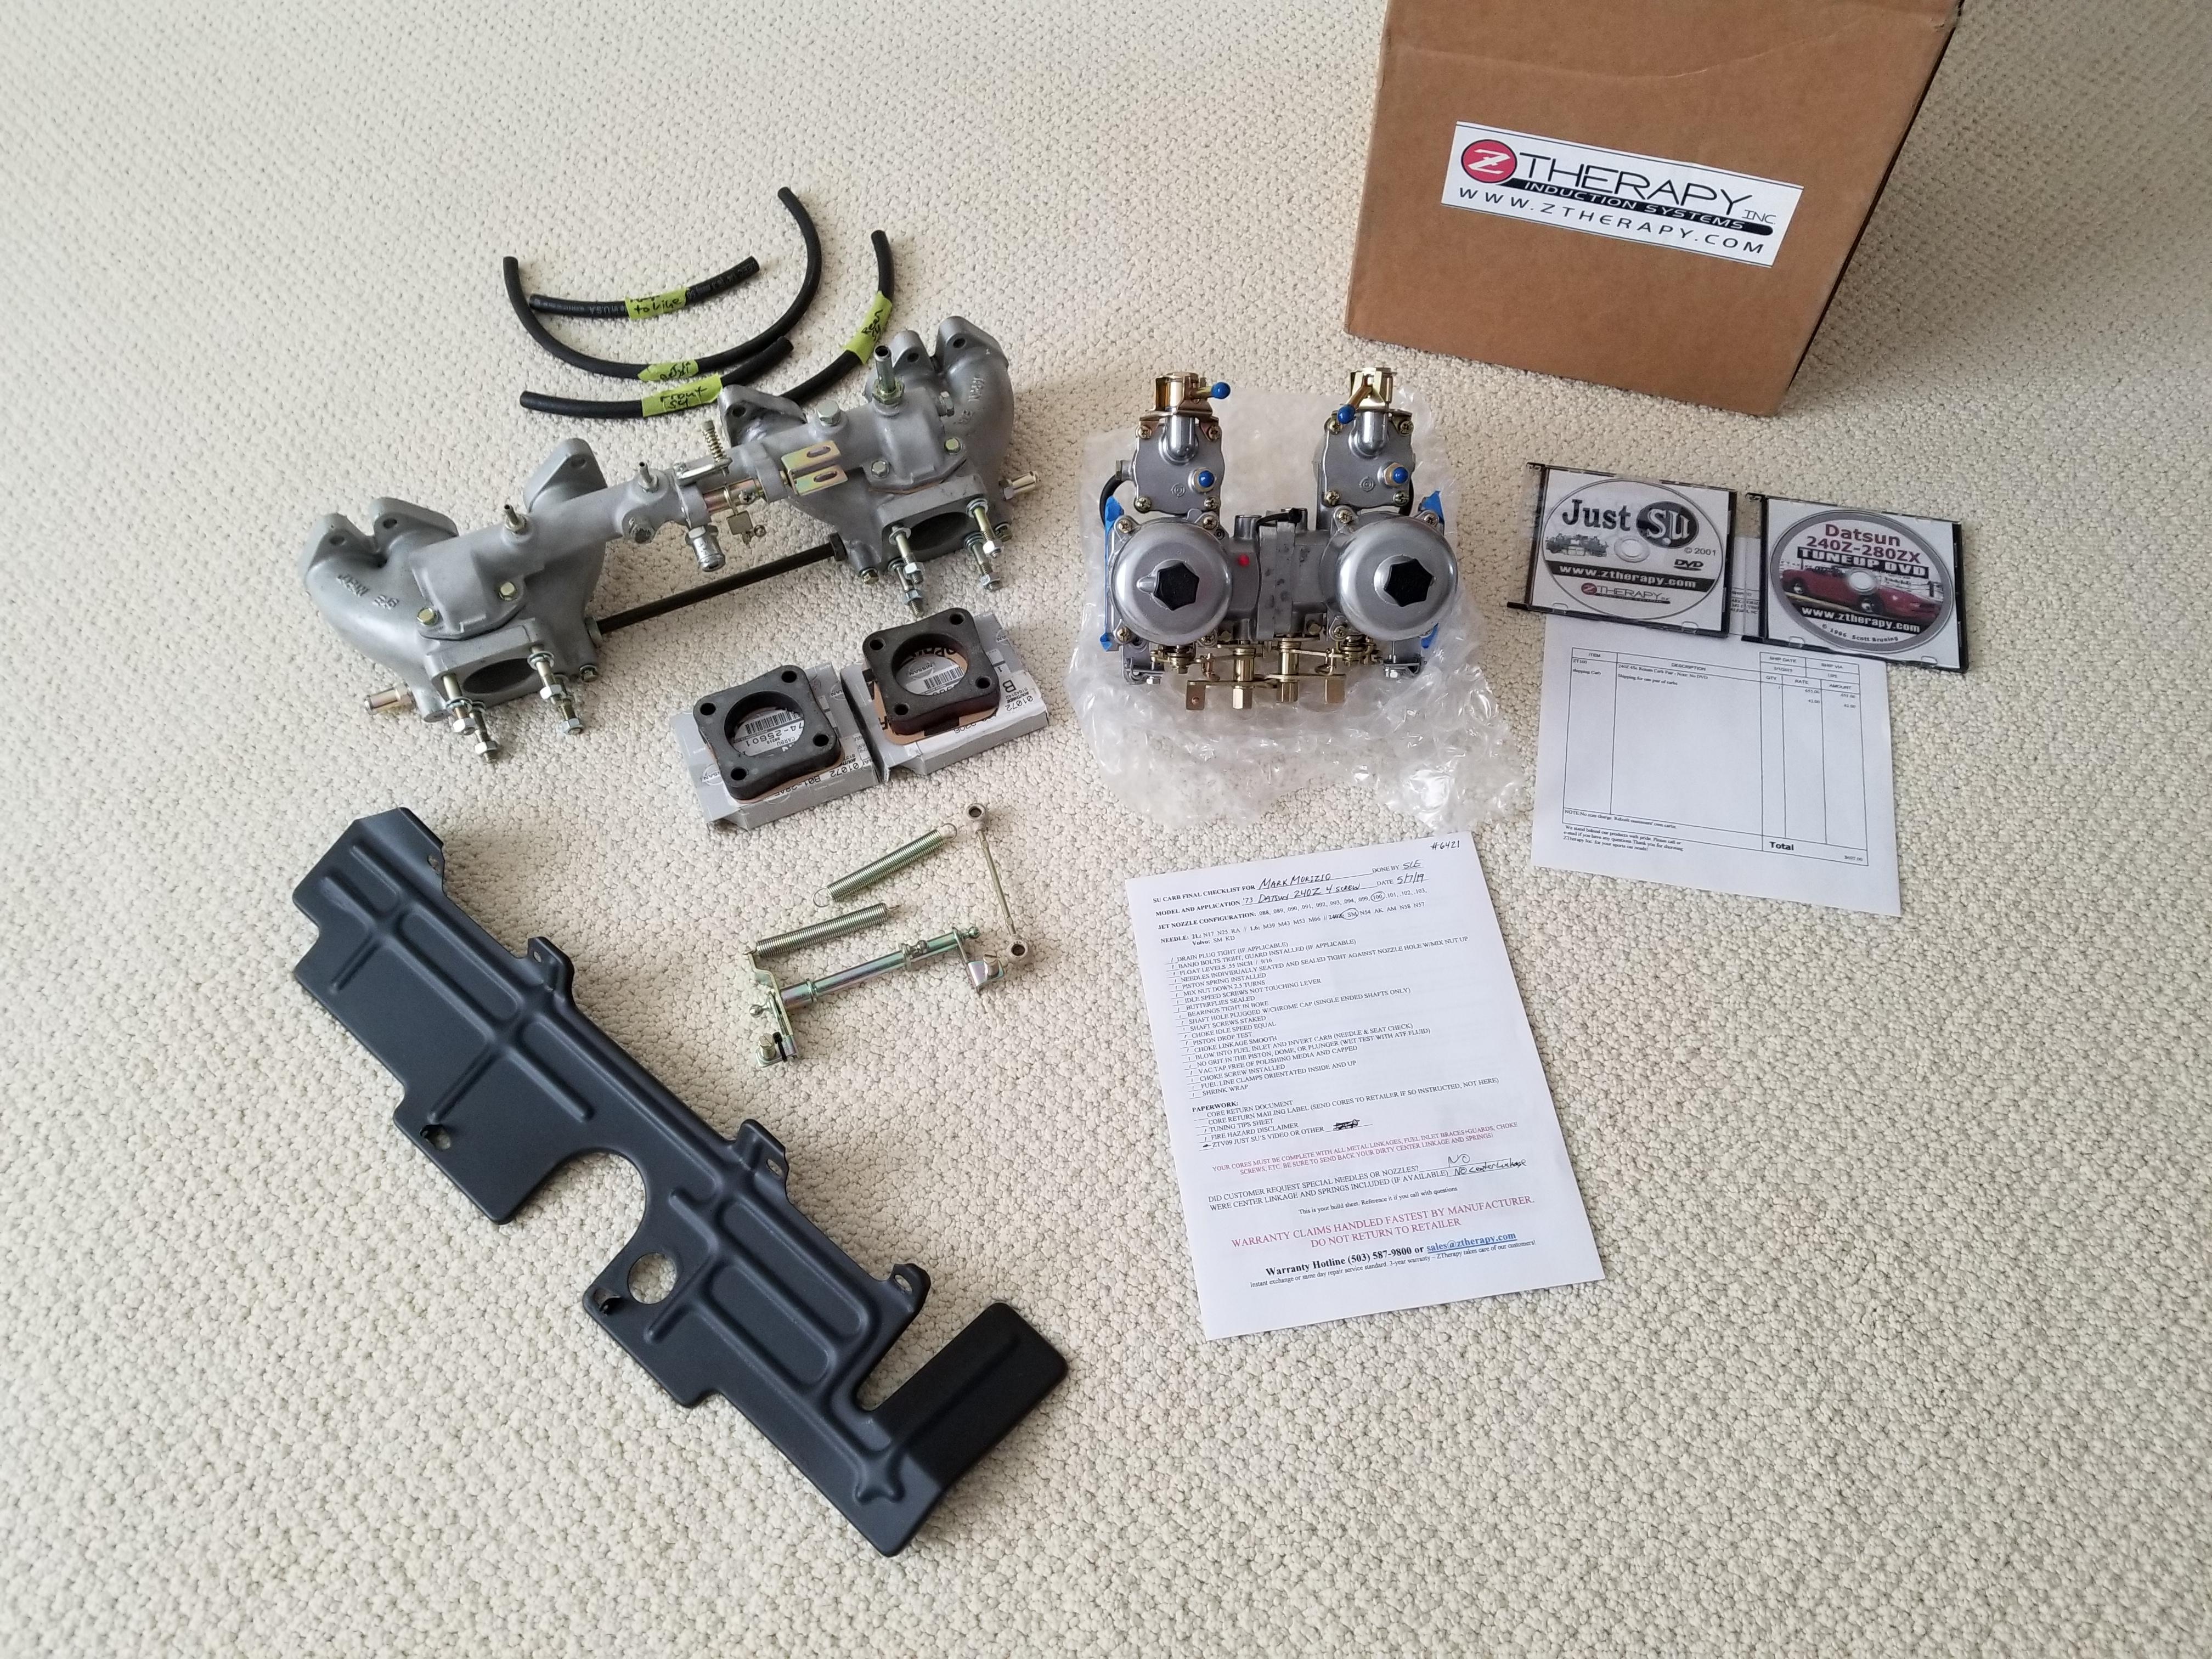 ZTherapy 4Screw SU's , E46 Manifold & Balance Tube , Linkages , Insulators - Complete Assembly